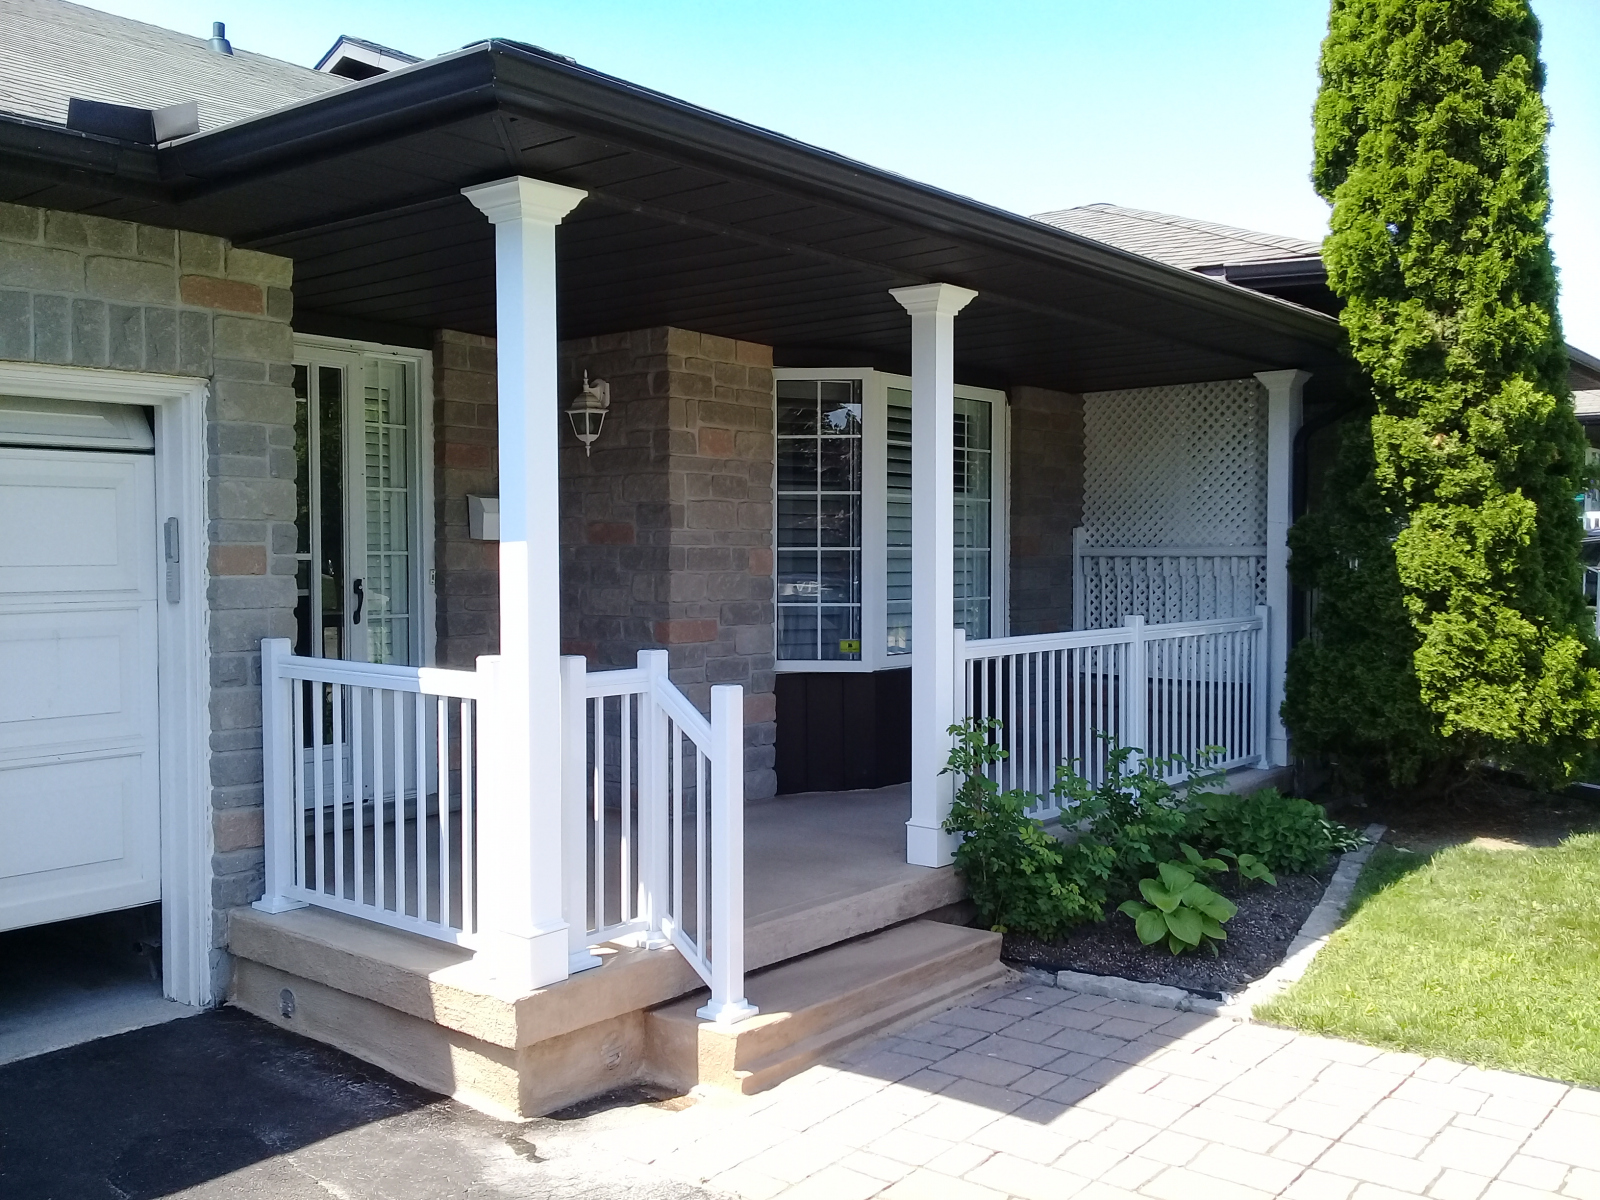 Porch Resurfacing with Bisque Tan Concrete Coating